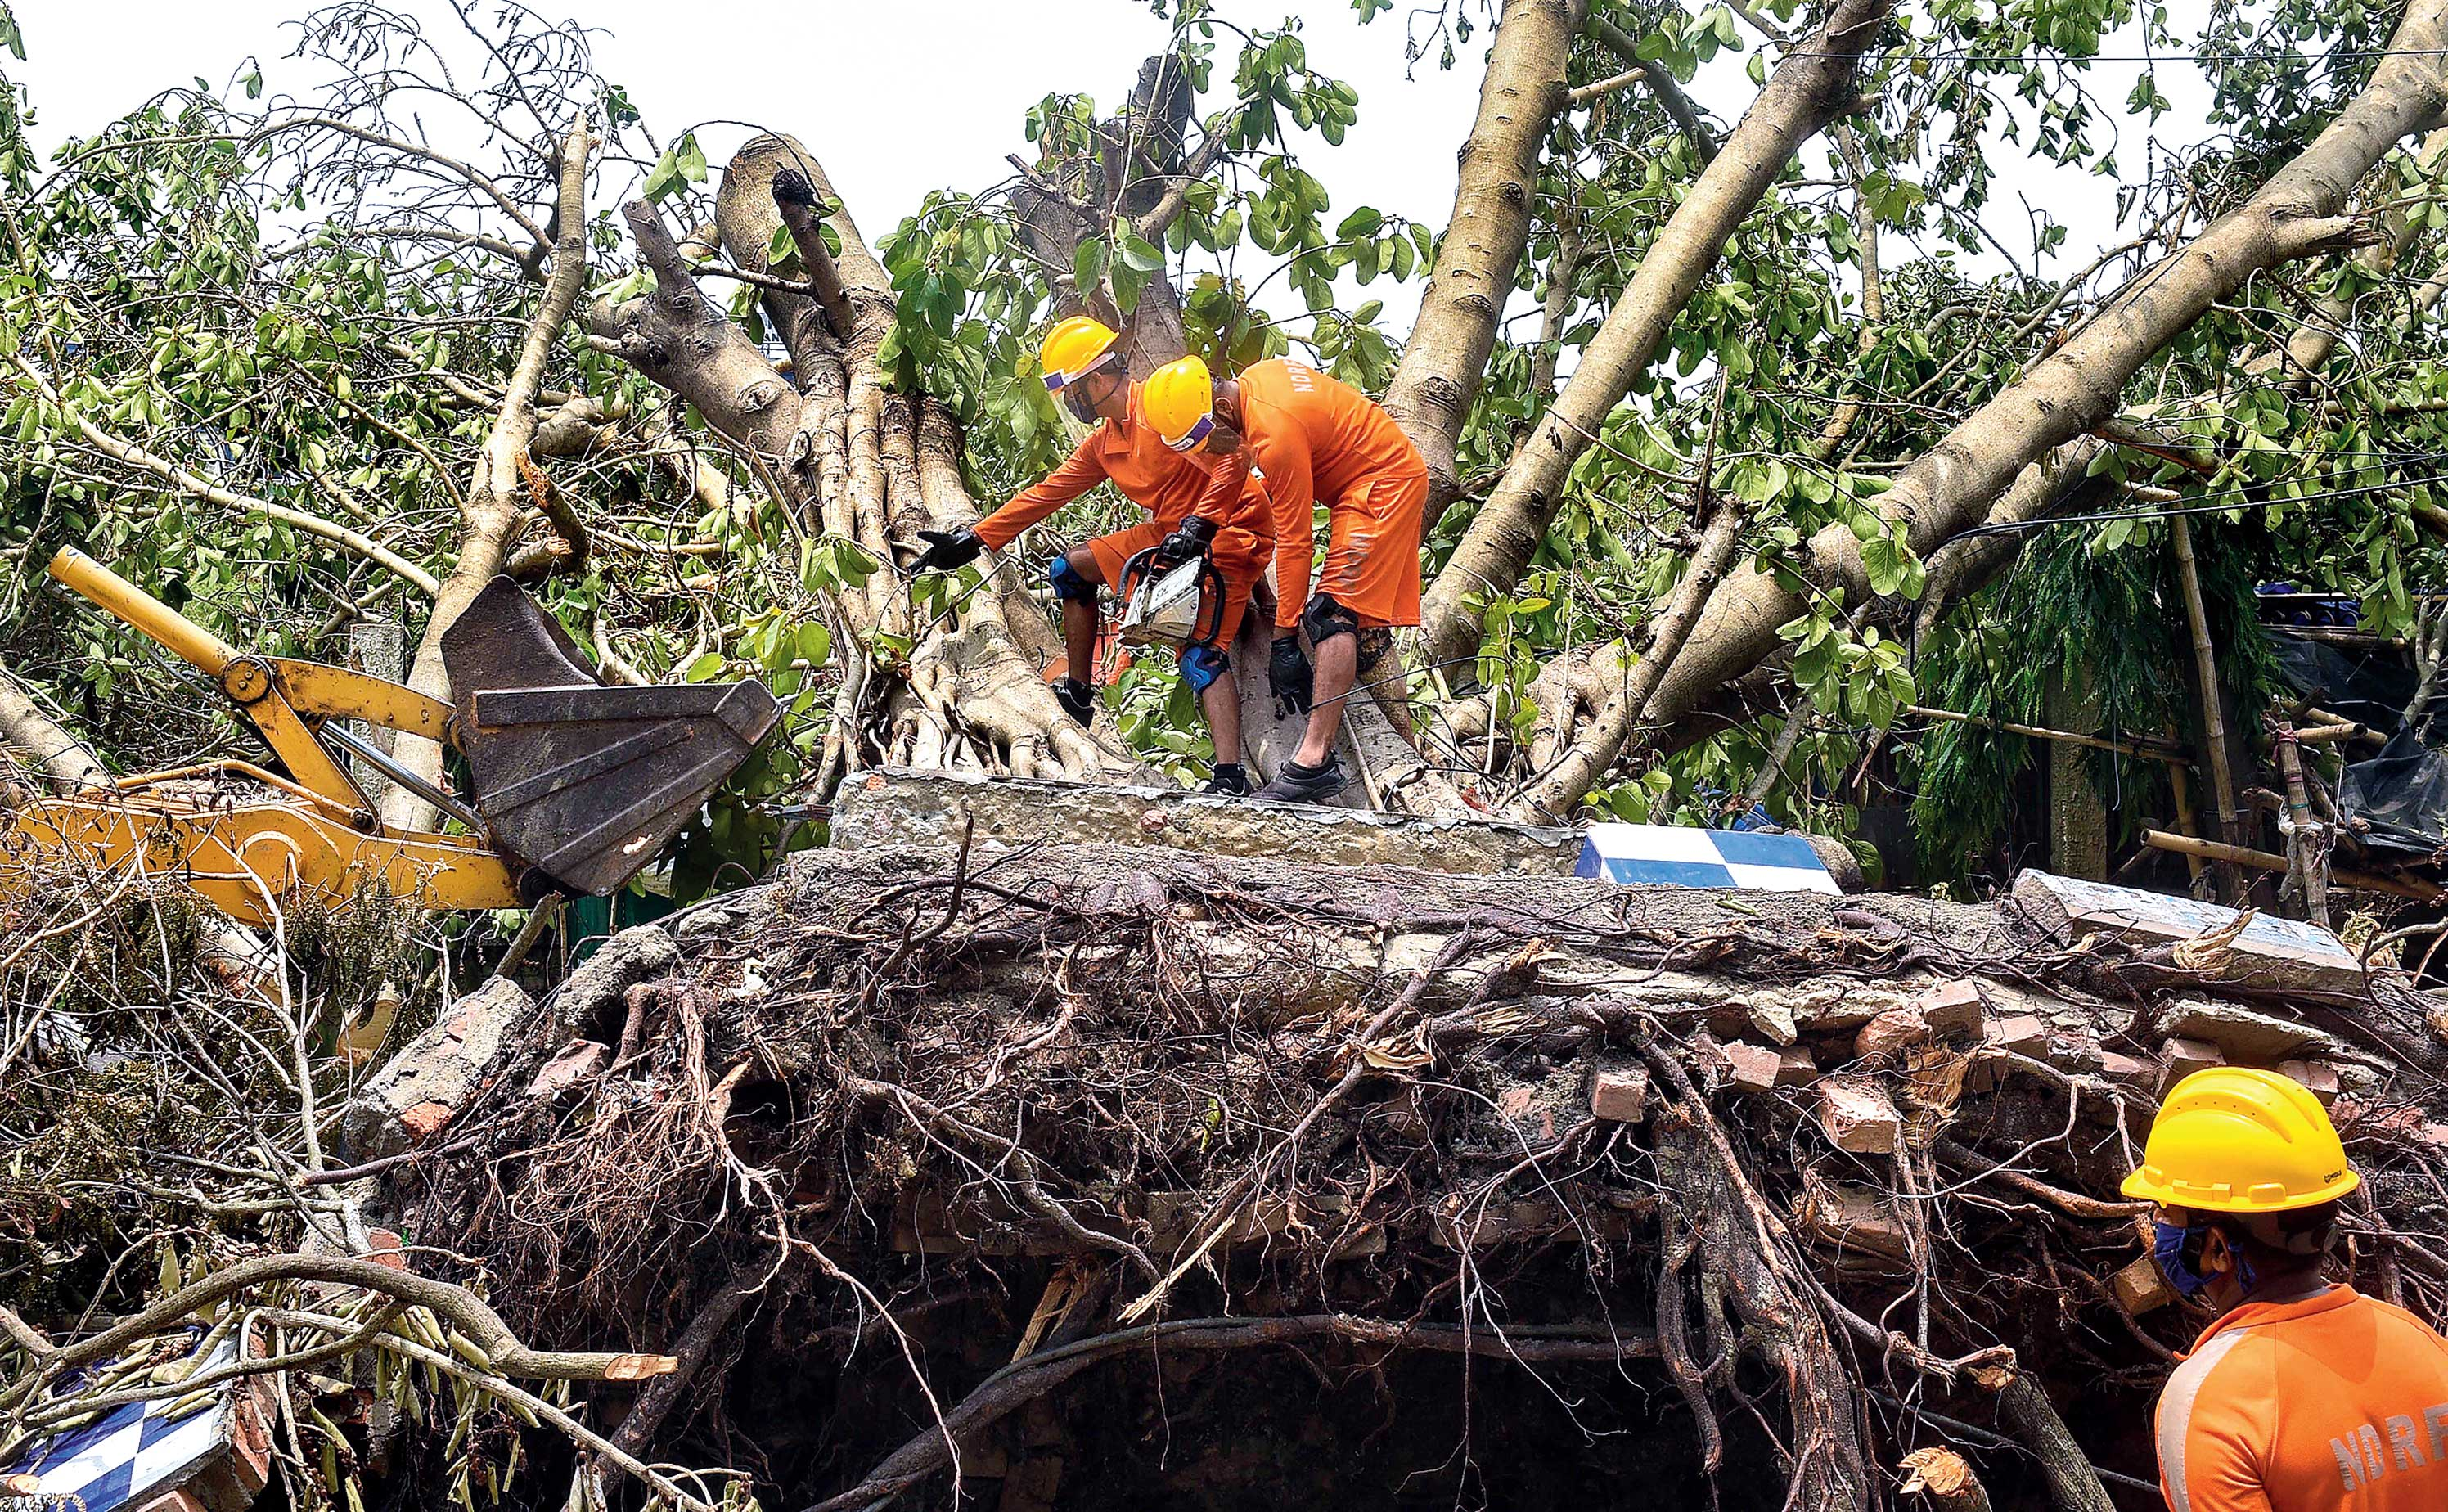 NDRF personnel work to clear an uprooted tree from a road in the aftermath of Cyclone Amphan in Calcutta.